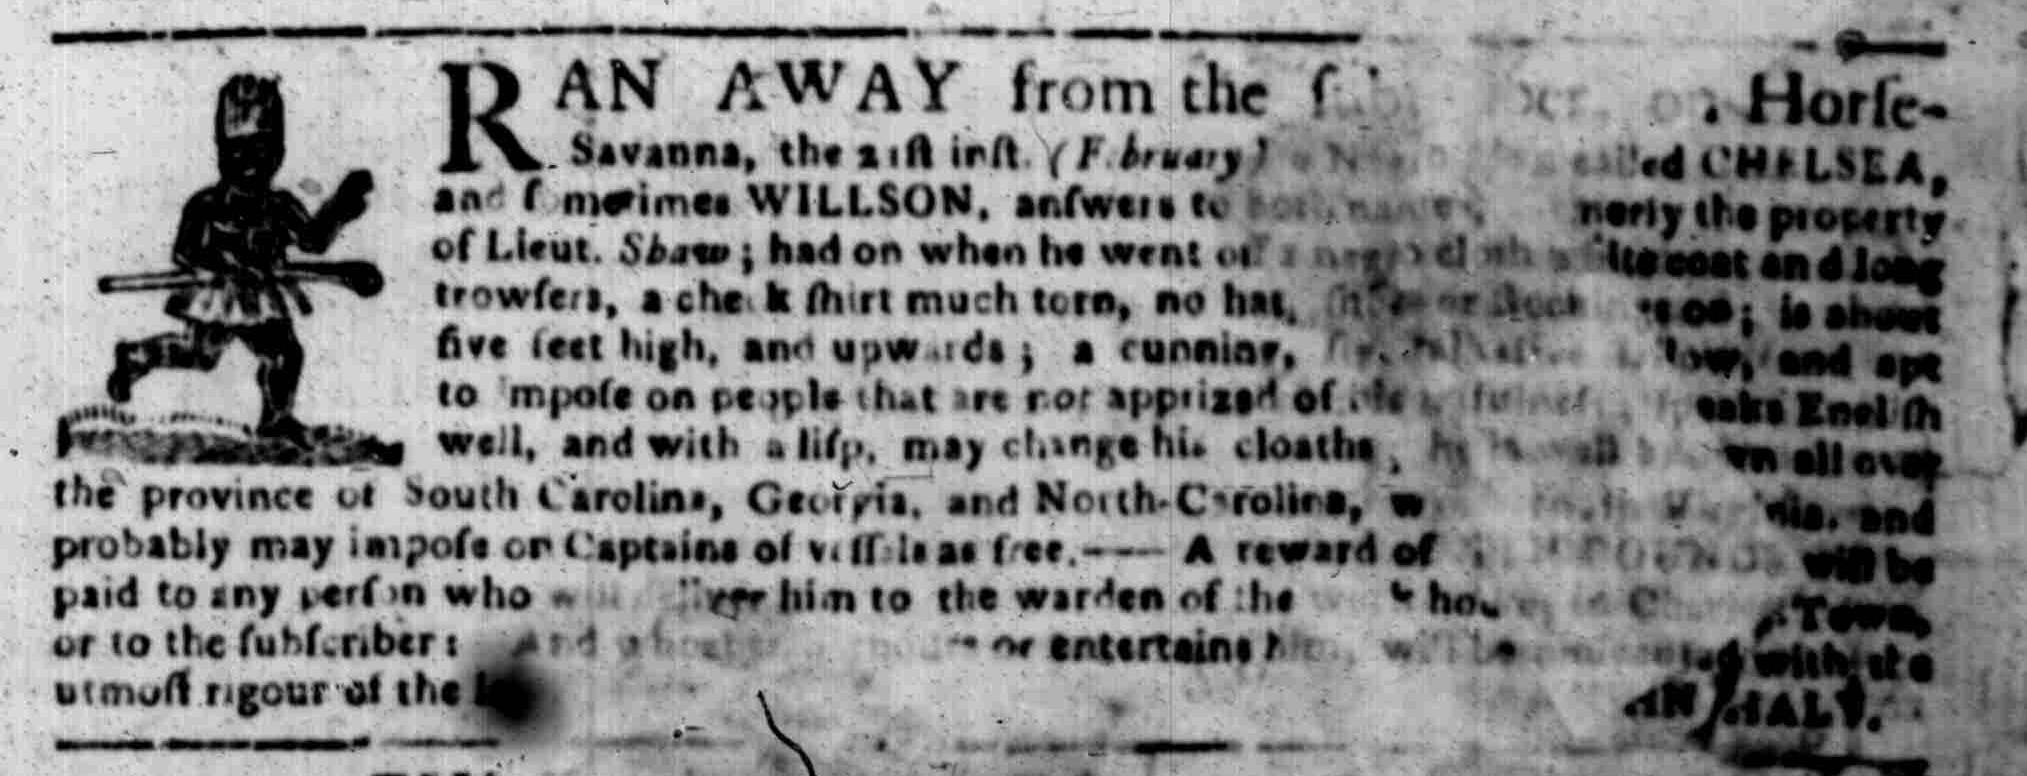 Mar 16 - South Carolina Gazette Slavery 6